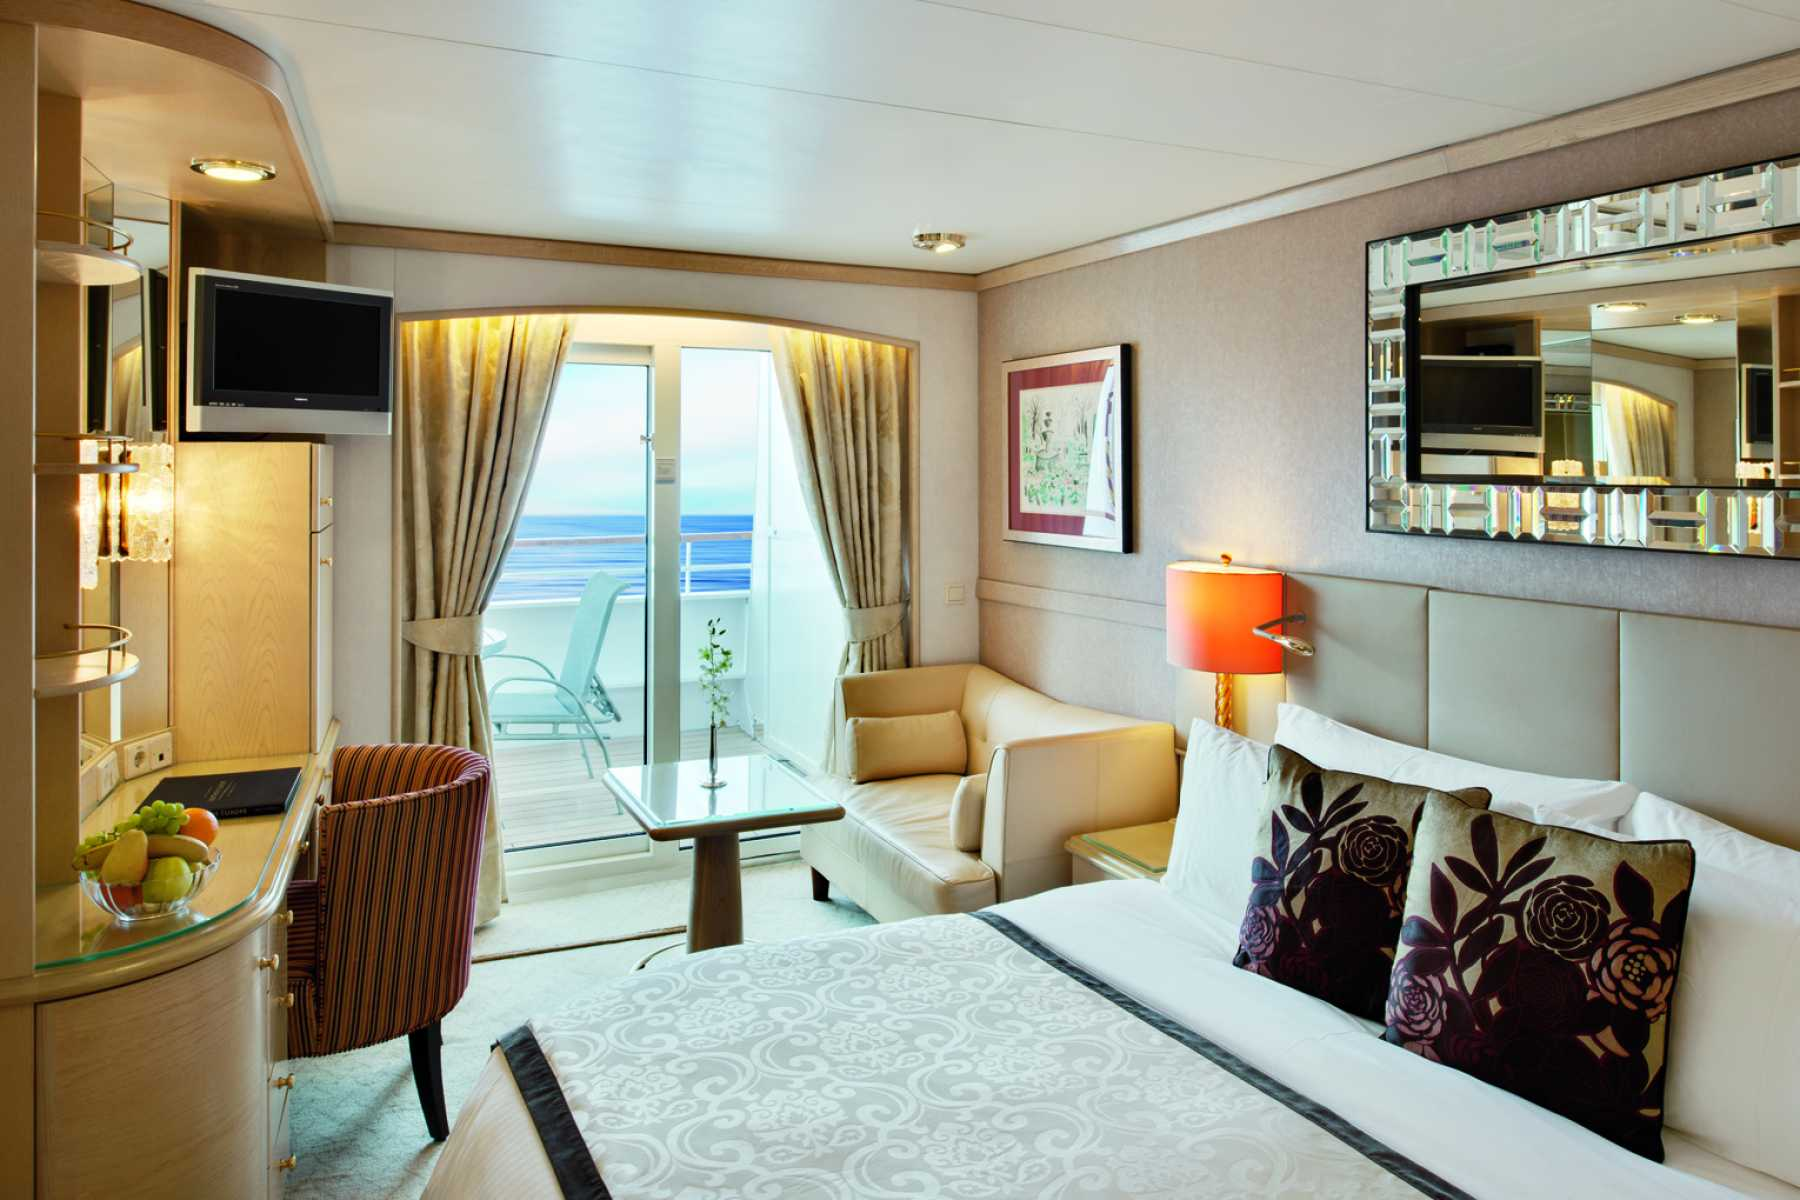 Crystal Cruises Crystal Symphony Accommodation Deluxe Stateroom with Verandah.jpg